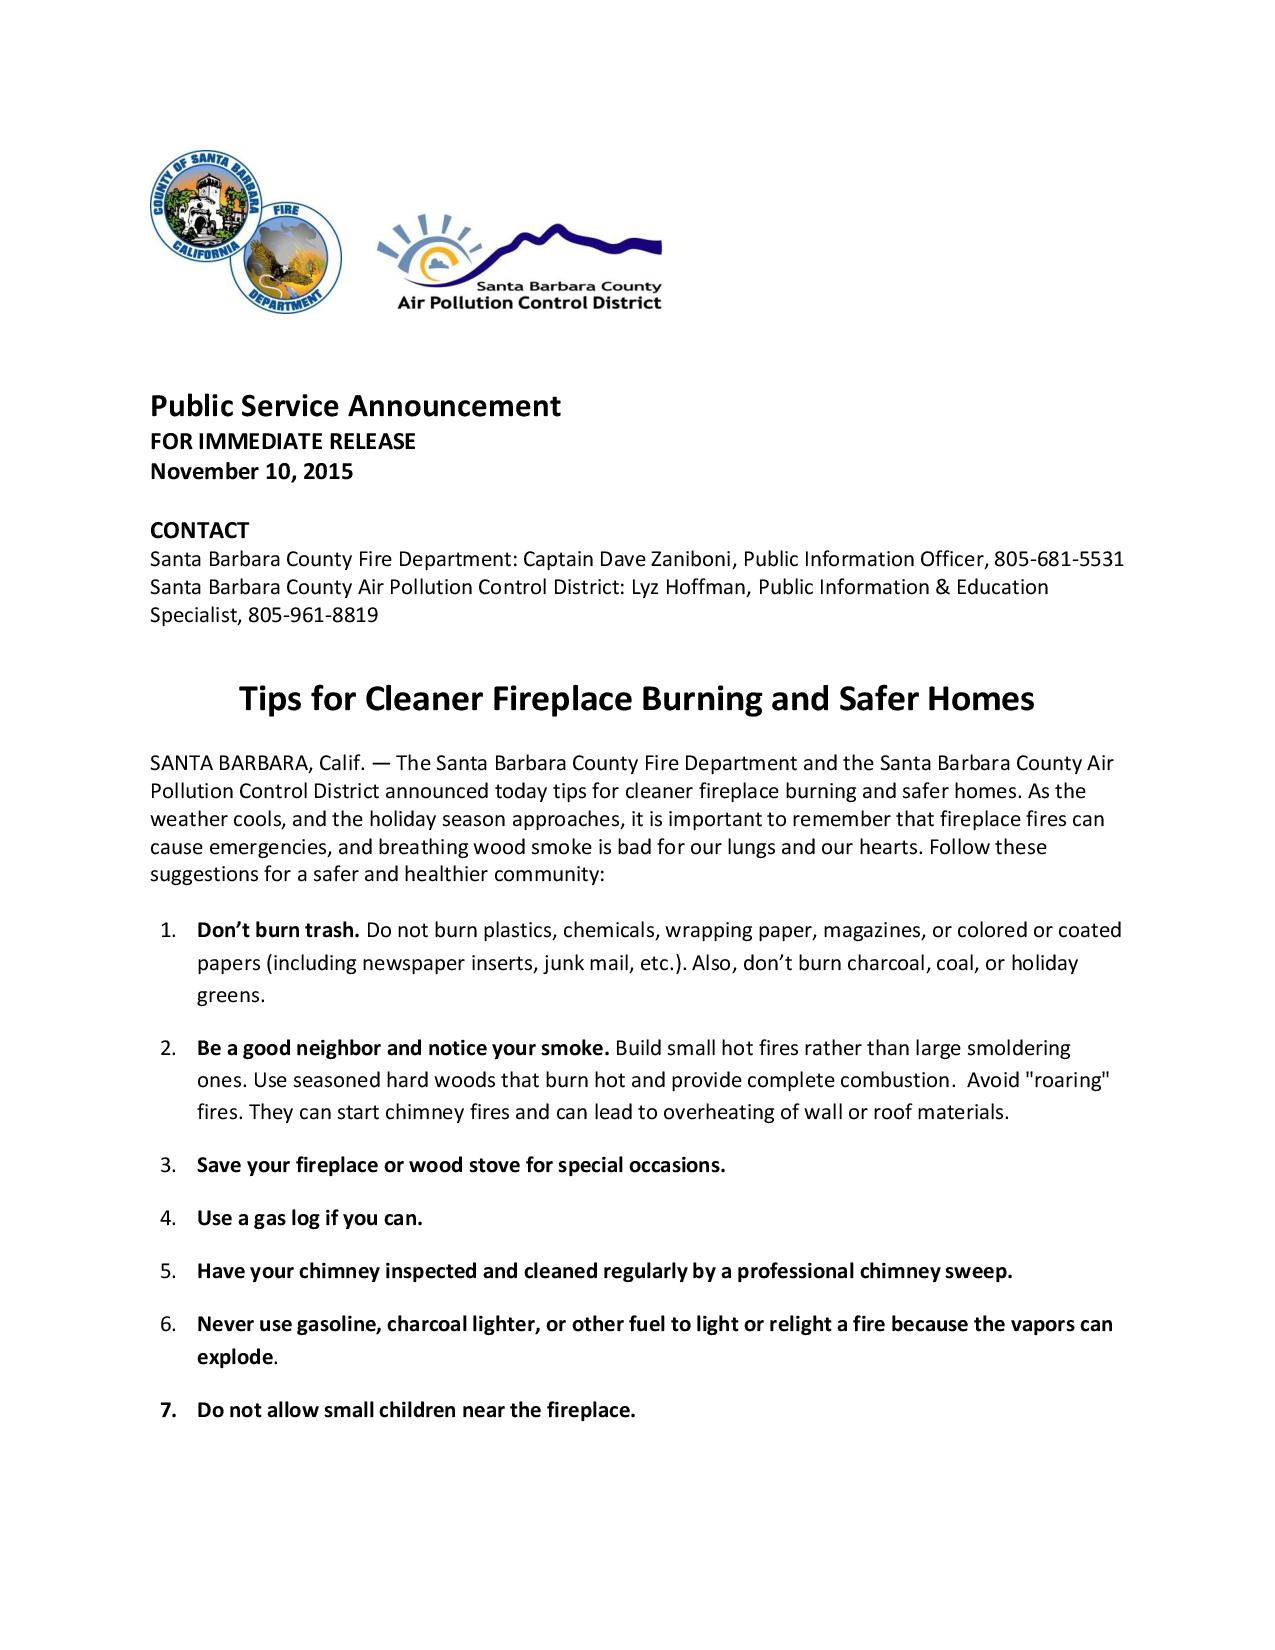 Tips for Cleaner Fireplace Burning and Safer Homes-pg1